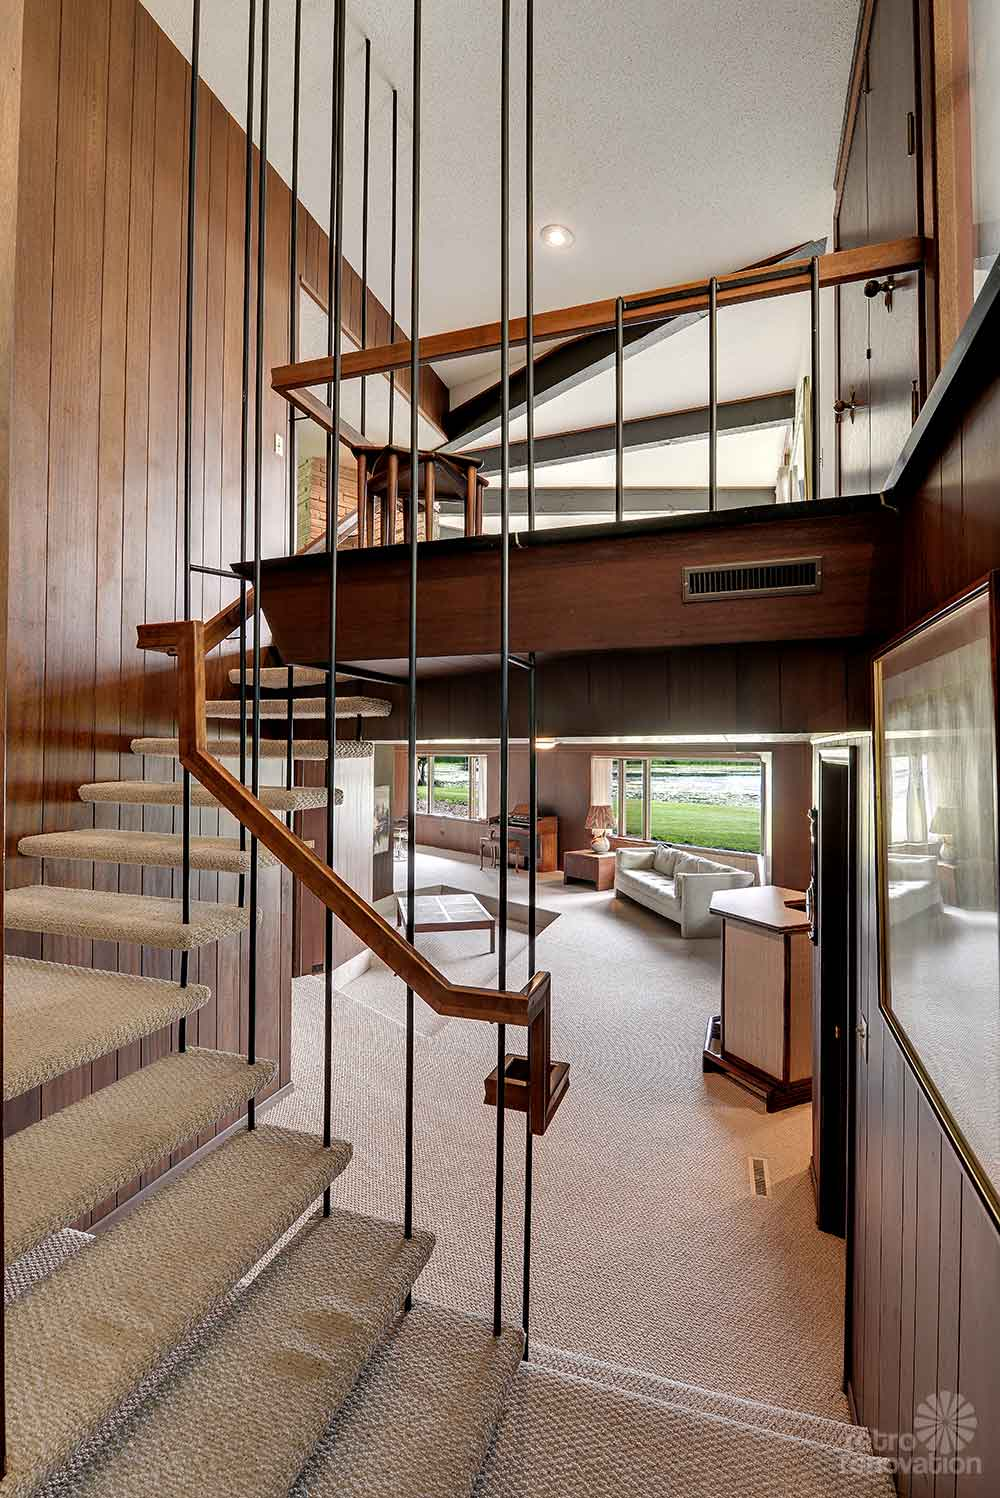 Stunning, spectacular 1961 mid-century modern time capsule ...